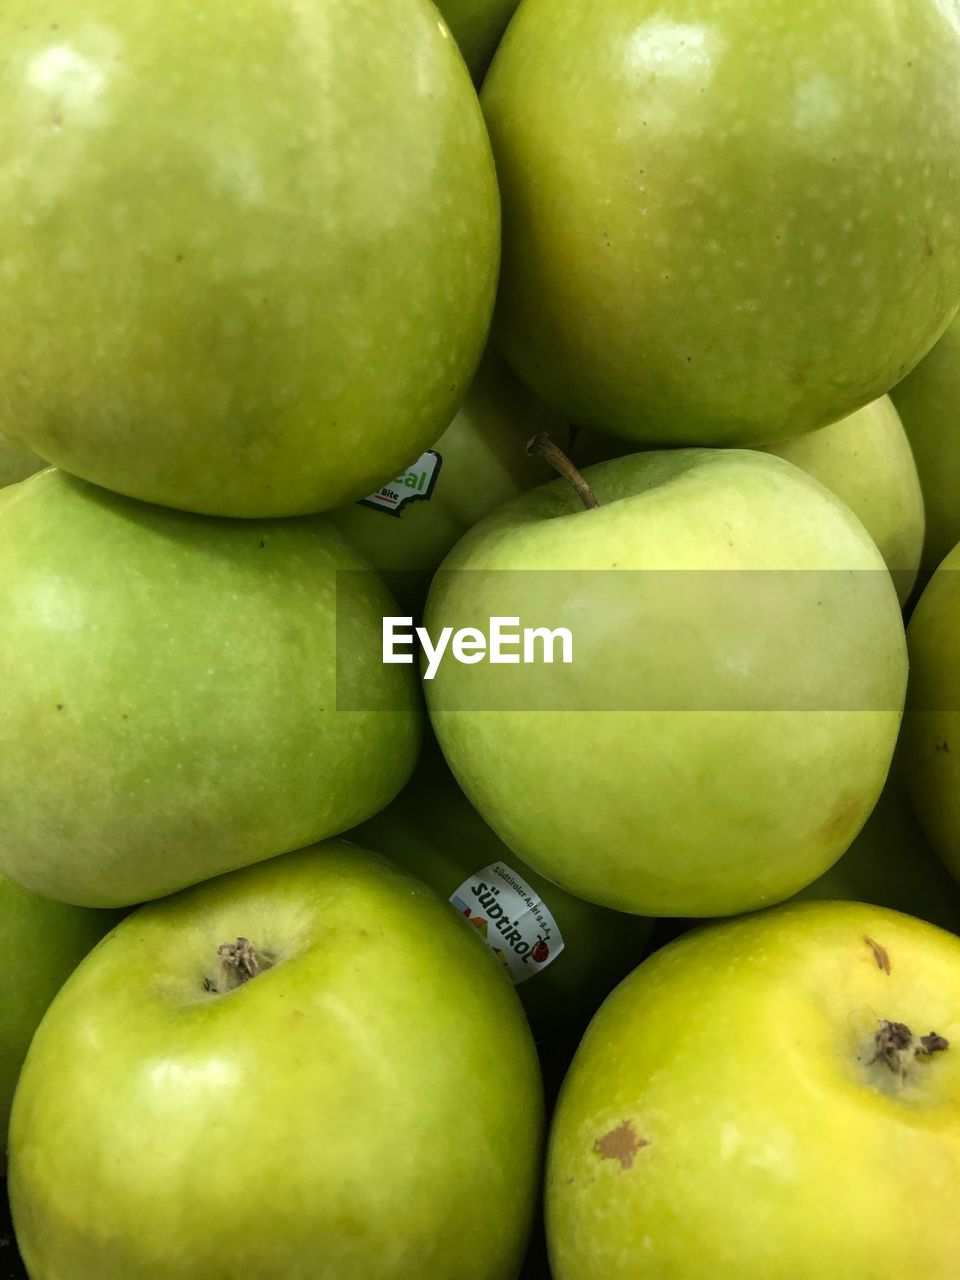 food, food and drink, healthy eating, green color, fruit, wellbeing, freshness, no people, still life, full frame, granny smith apple, apple, close-up, apple - fruit, backgrounds, group of objects, market, indoors, large group of objects, high angle view, ripe